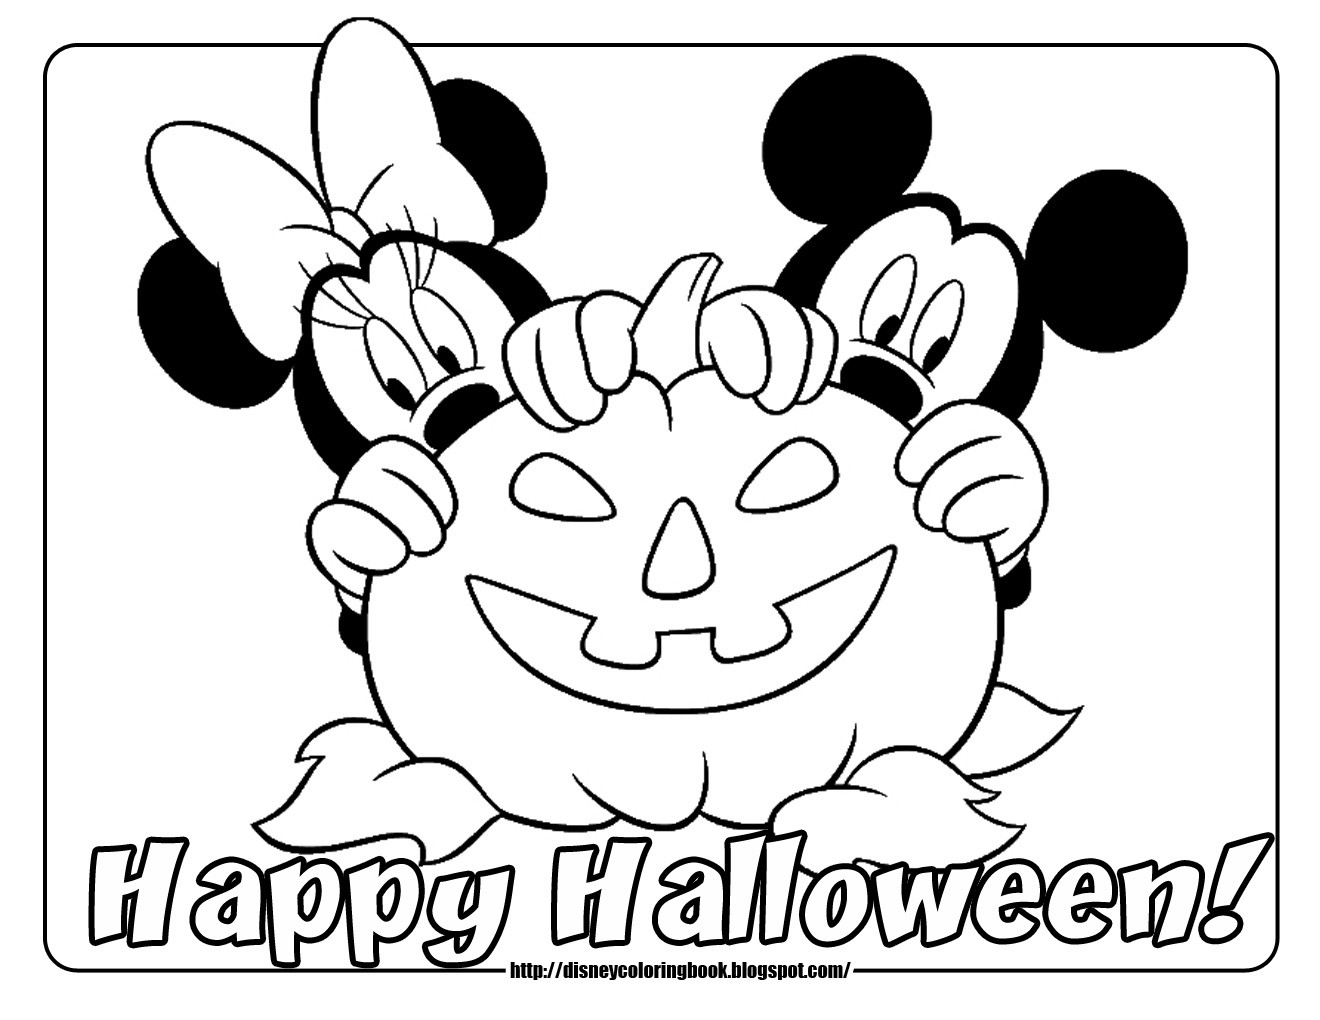 1320x1020 Mickey Mouse Clubhouse Easter Coloring Pages Best Of Interesting